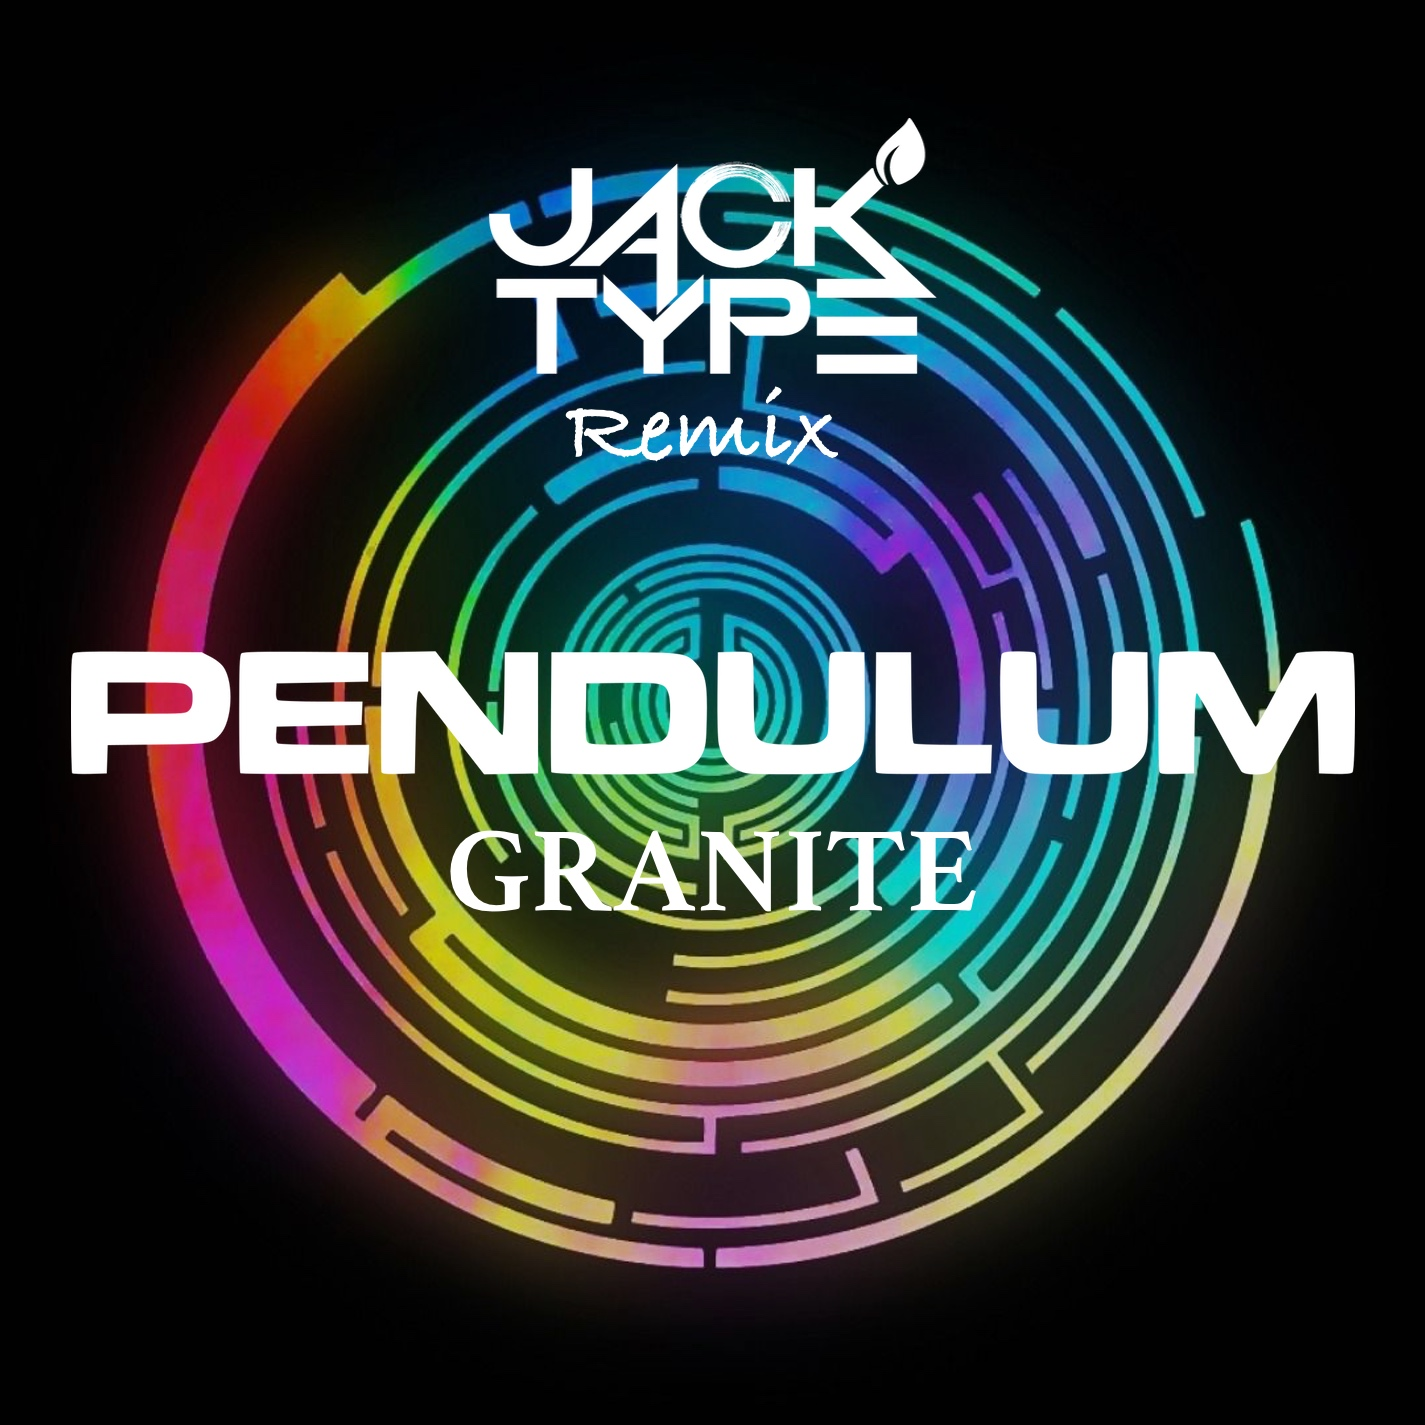 Pendulum Granite Jack Type Remix Jack Type